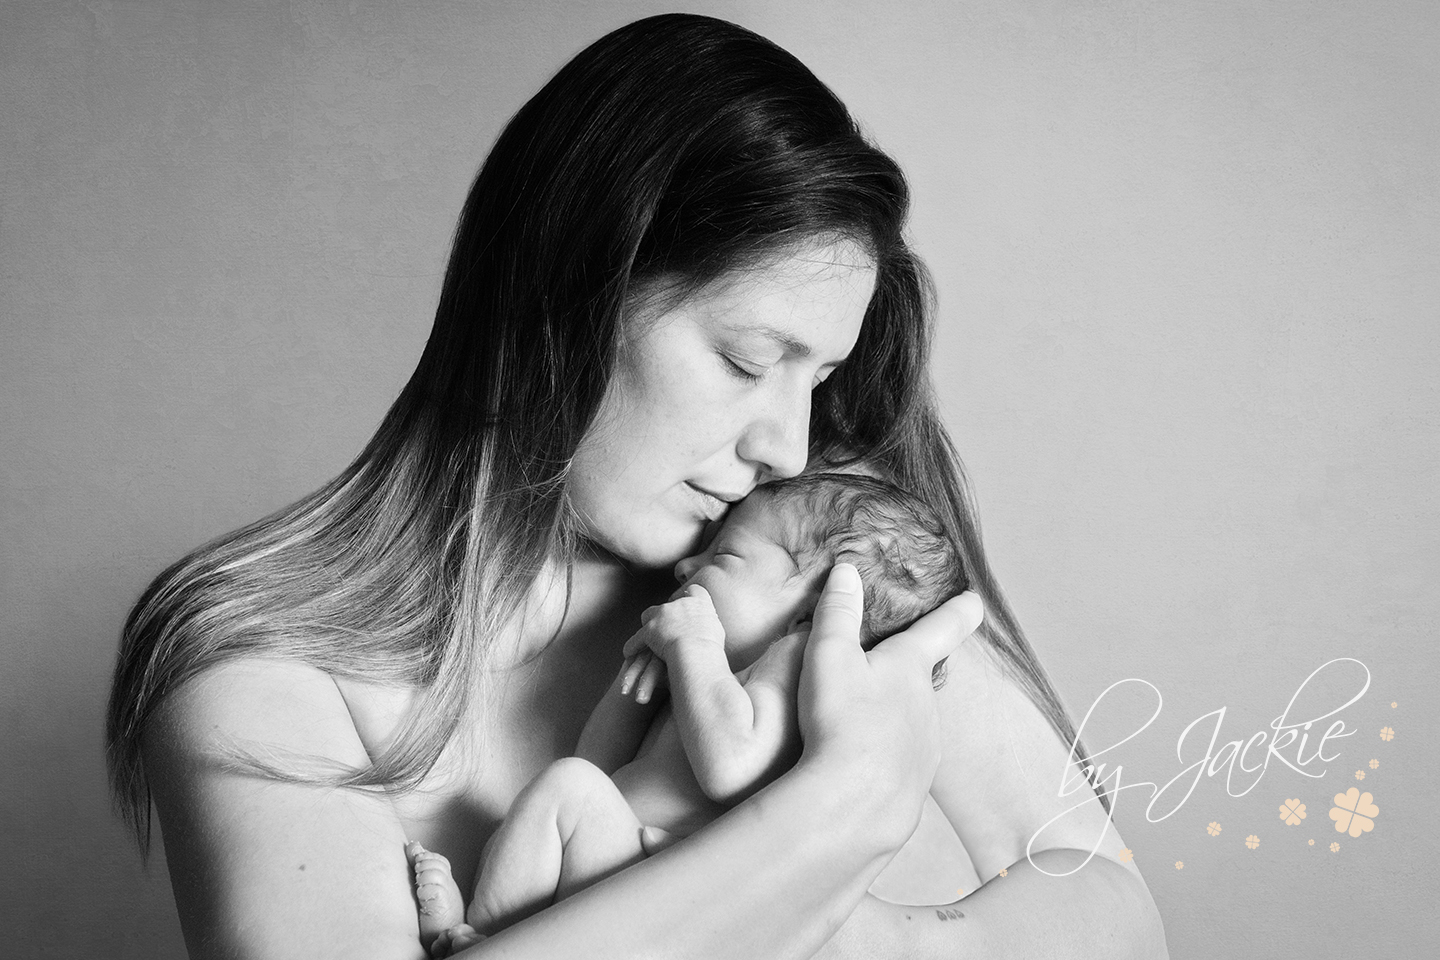 Image of a mum with her brand new baby girl, photograph by Babies By Jackie, in Market Weighton near Beverley, Hull, Hessle, Howden and York in Yorkshire UK